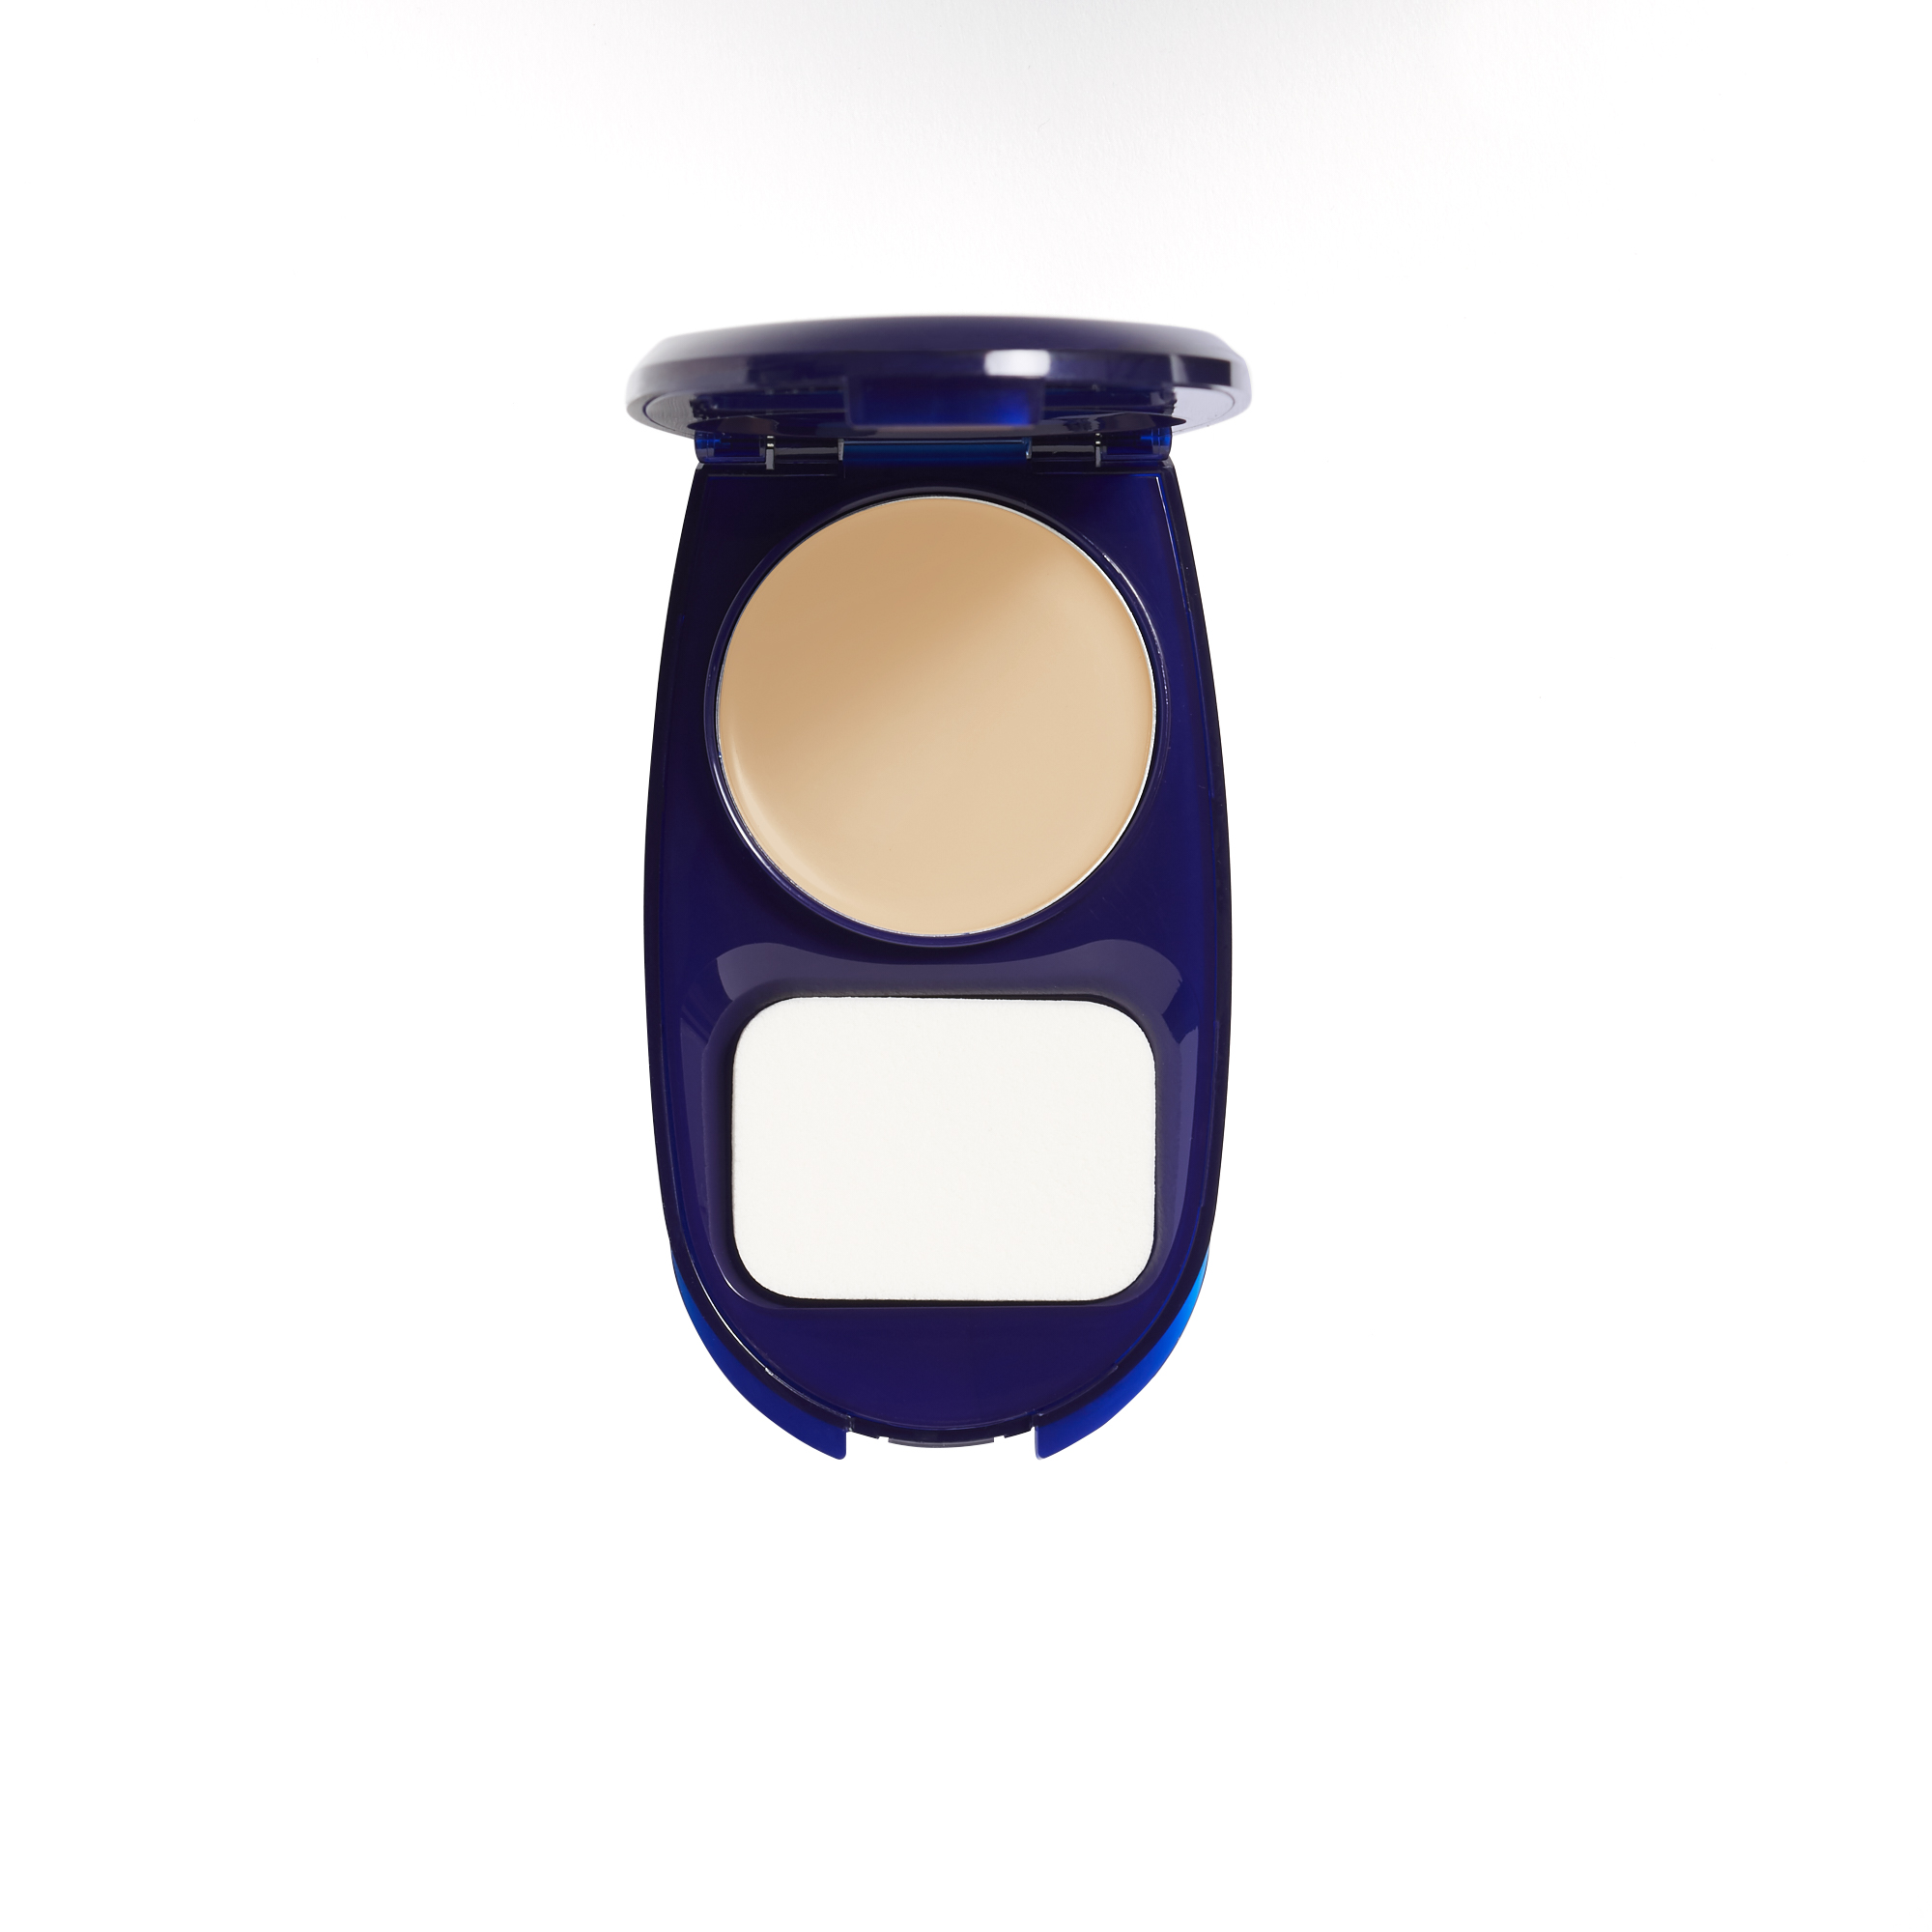 COVERGIRL Smoothers AquaSmooth Makeup Foundation, 710 Classic Ivory